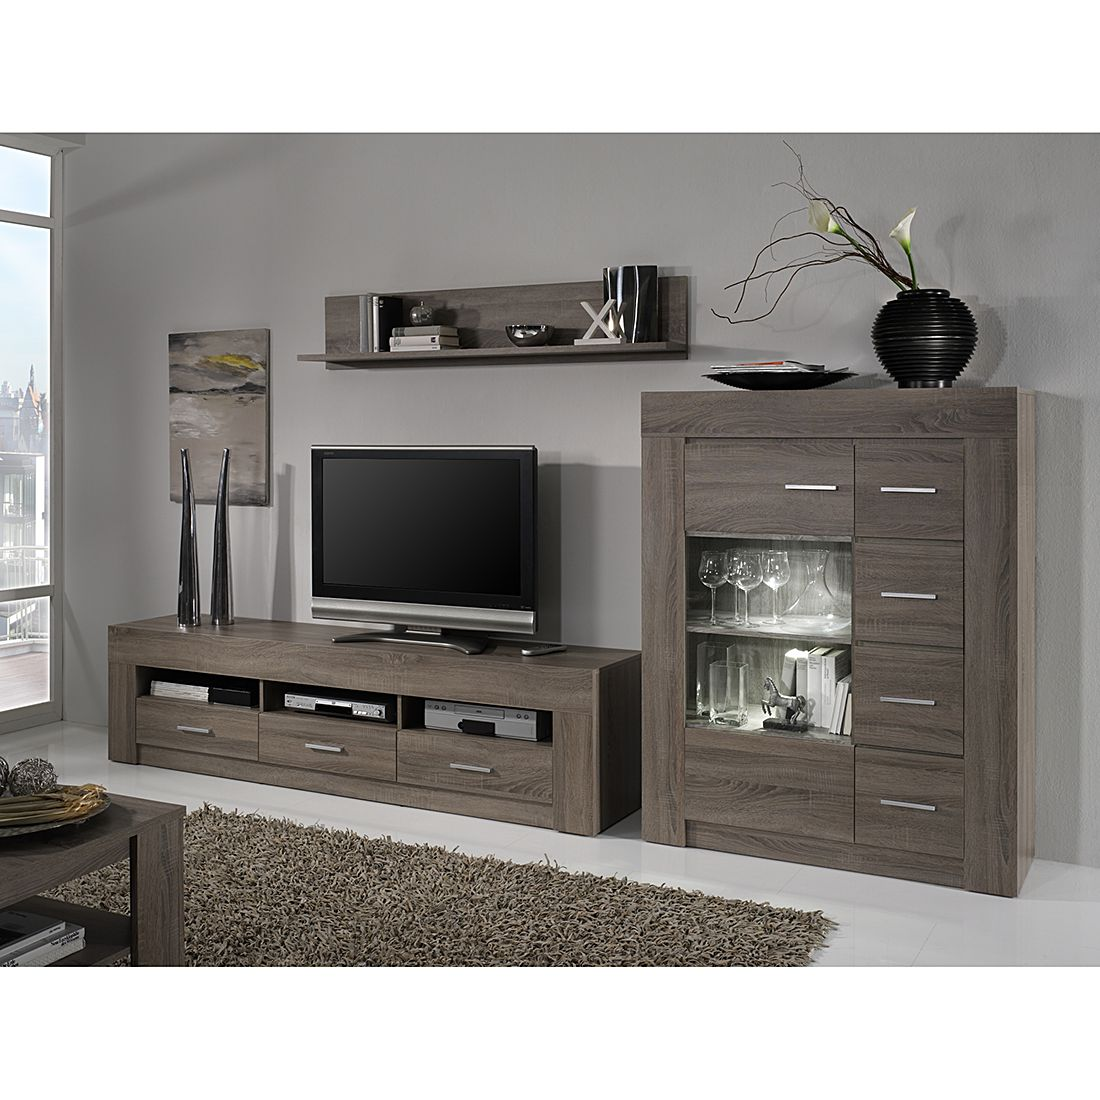 sonoma eiche deko interessante ideen f r. Black Bedroom Furniture Sets. Home Design Ideas